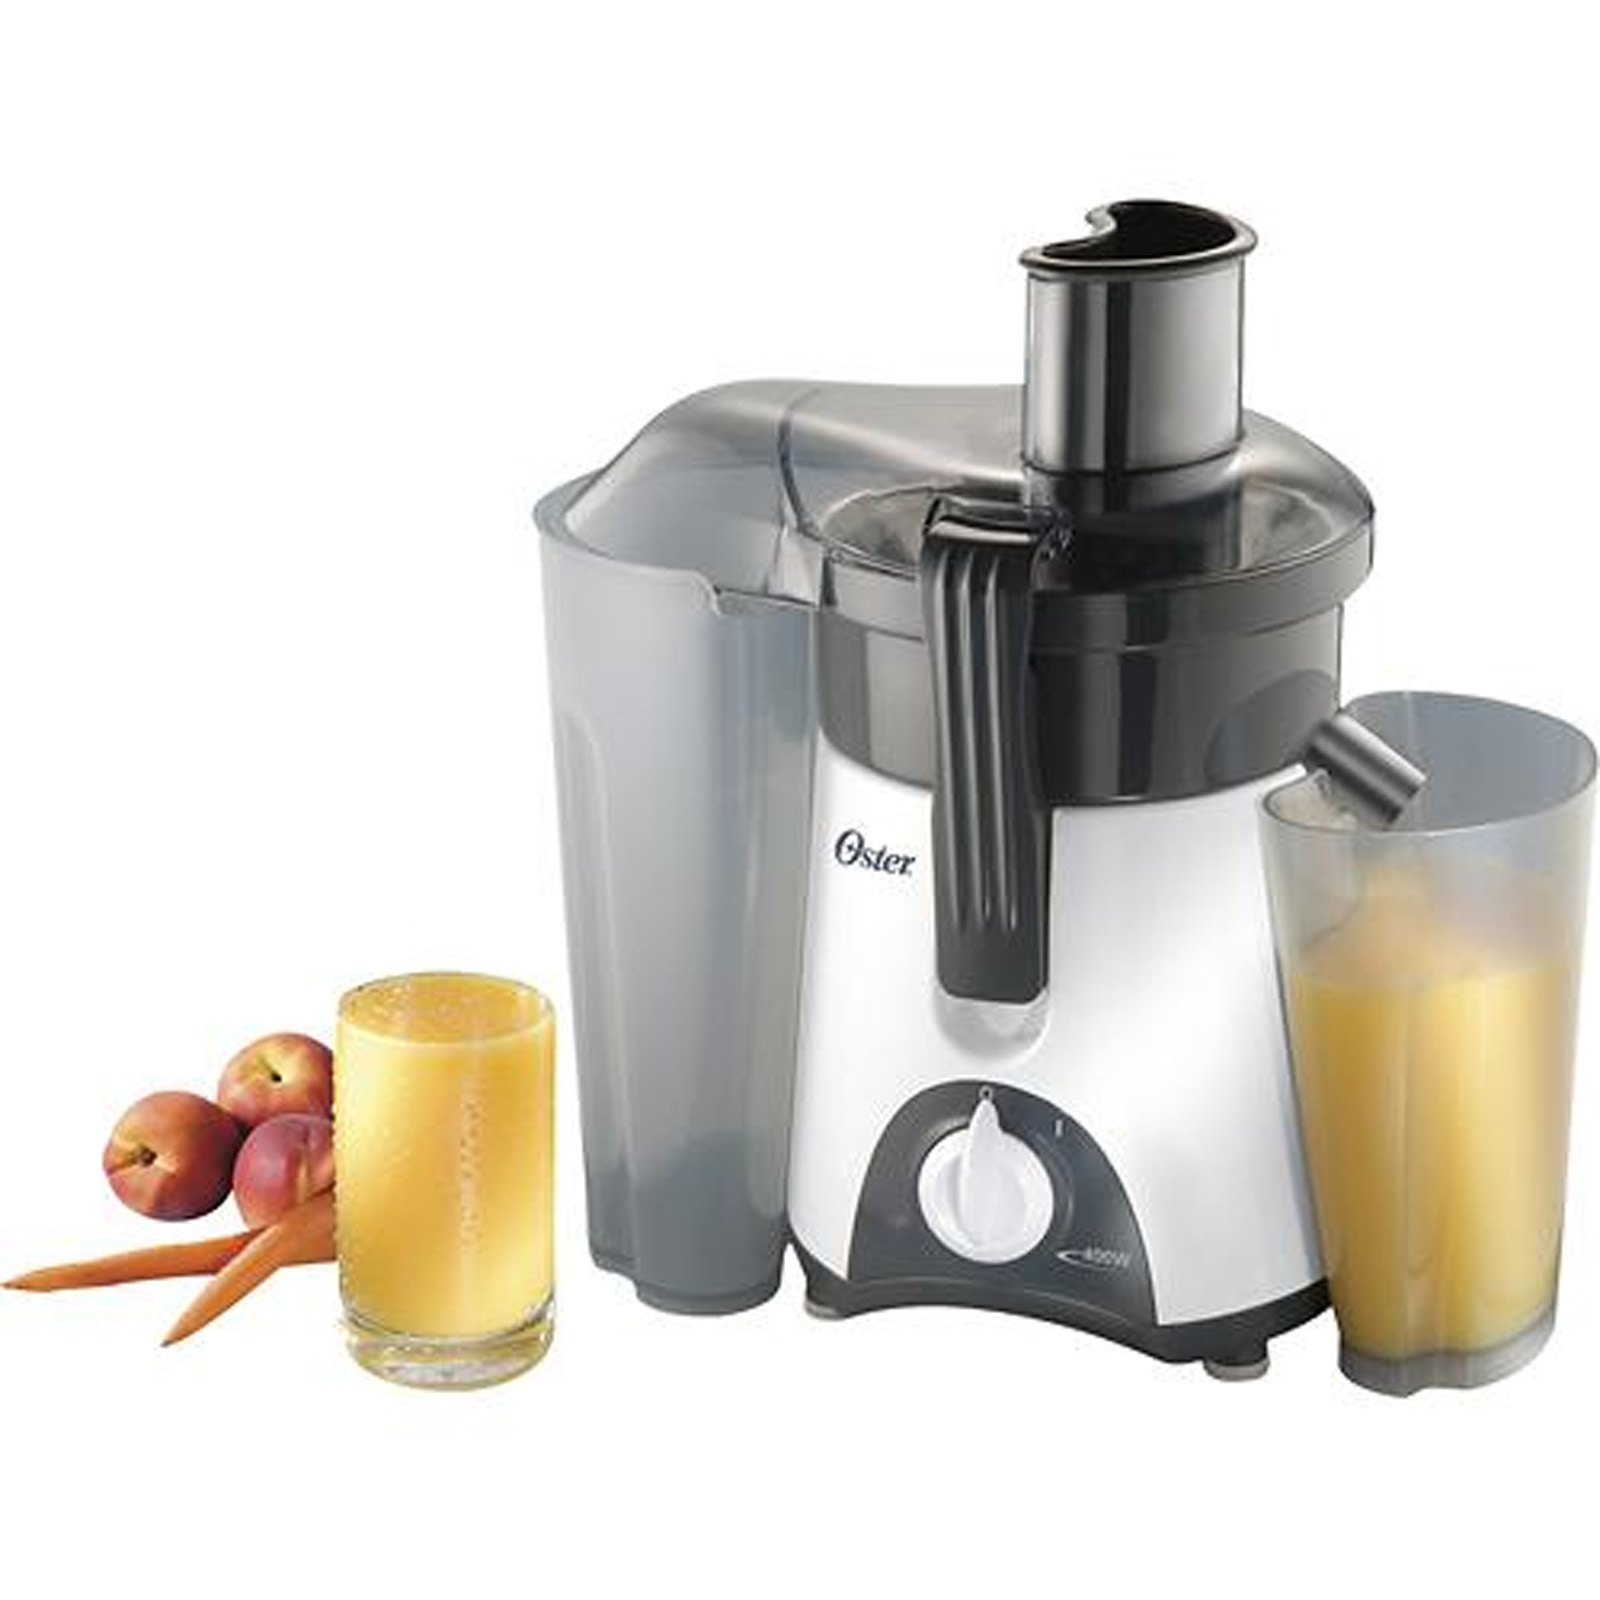 Oster-400W-Juice-Extractor